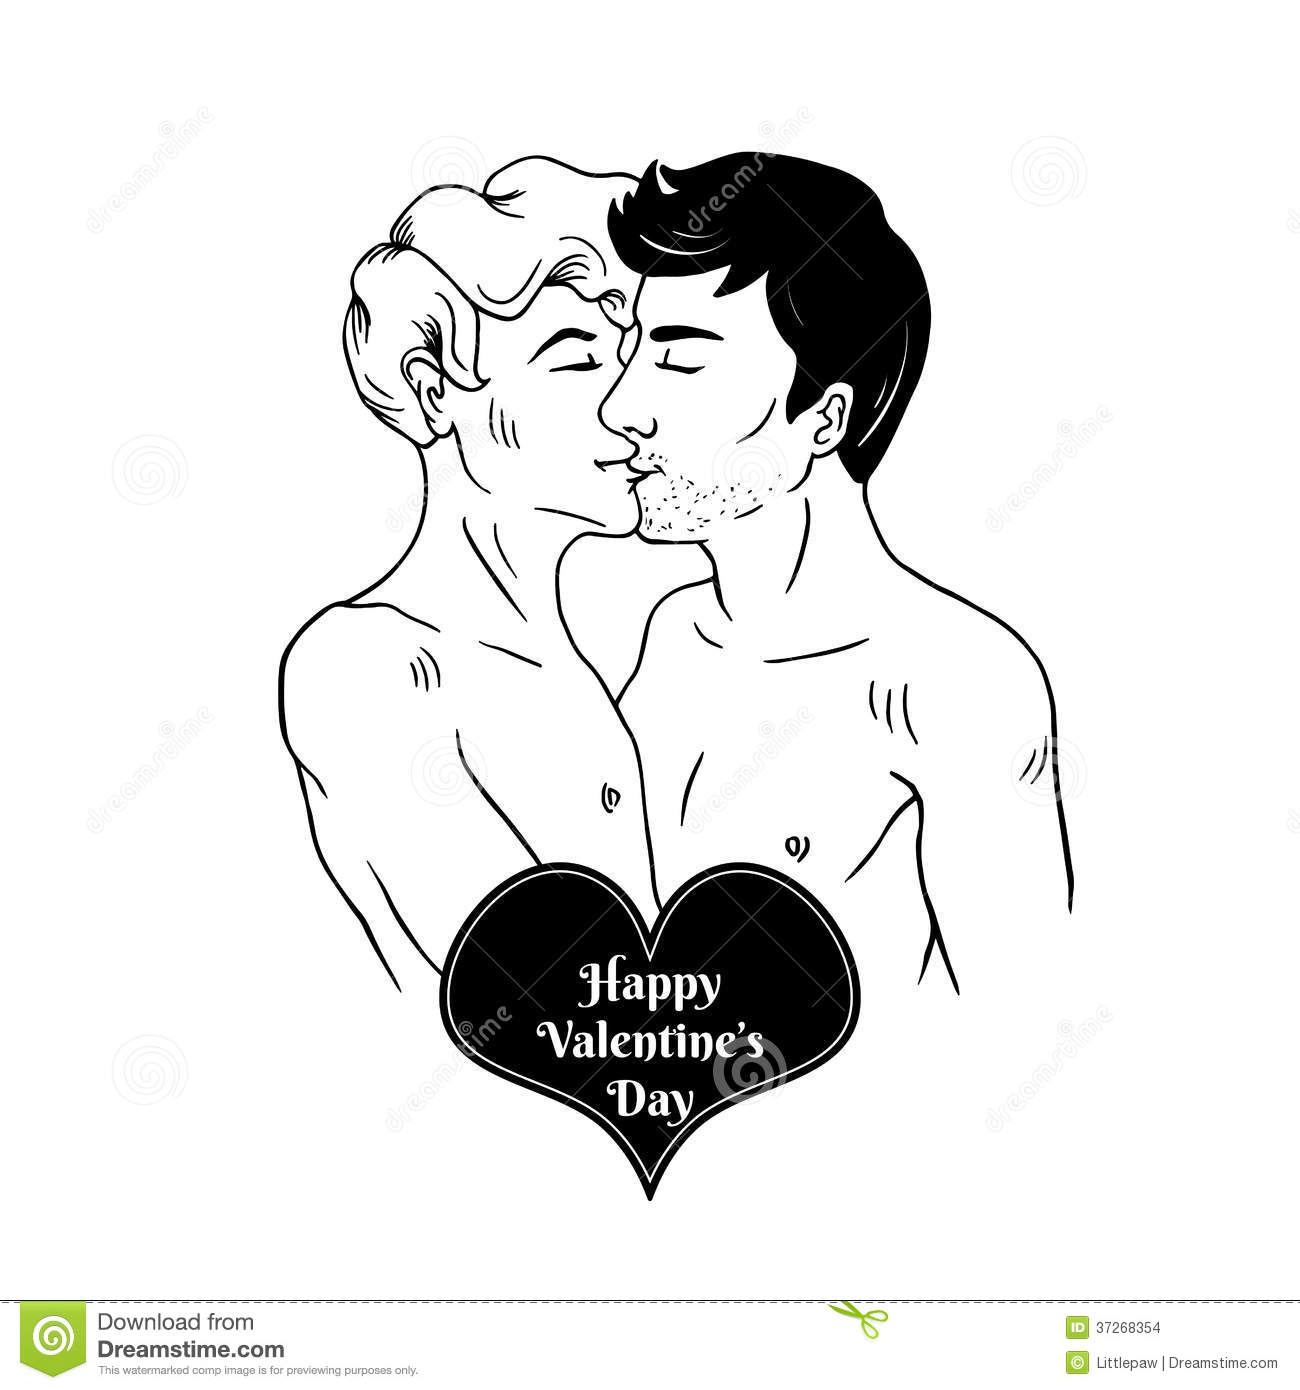 happy valentine s day card with two gay men kissing - Gay Valentines Cards